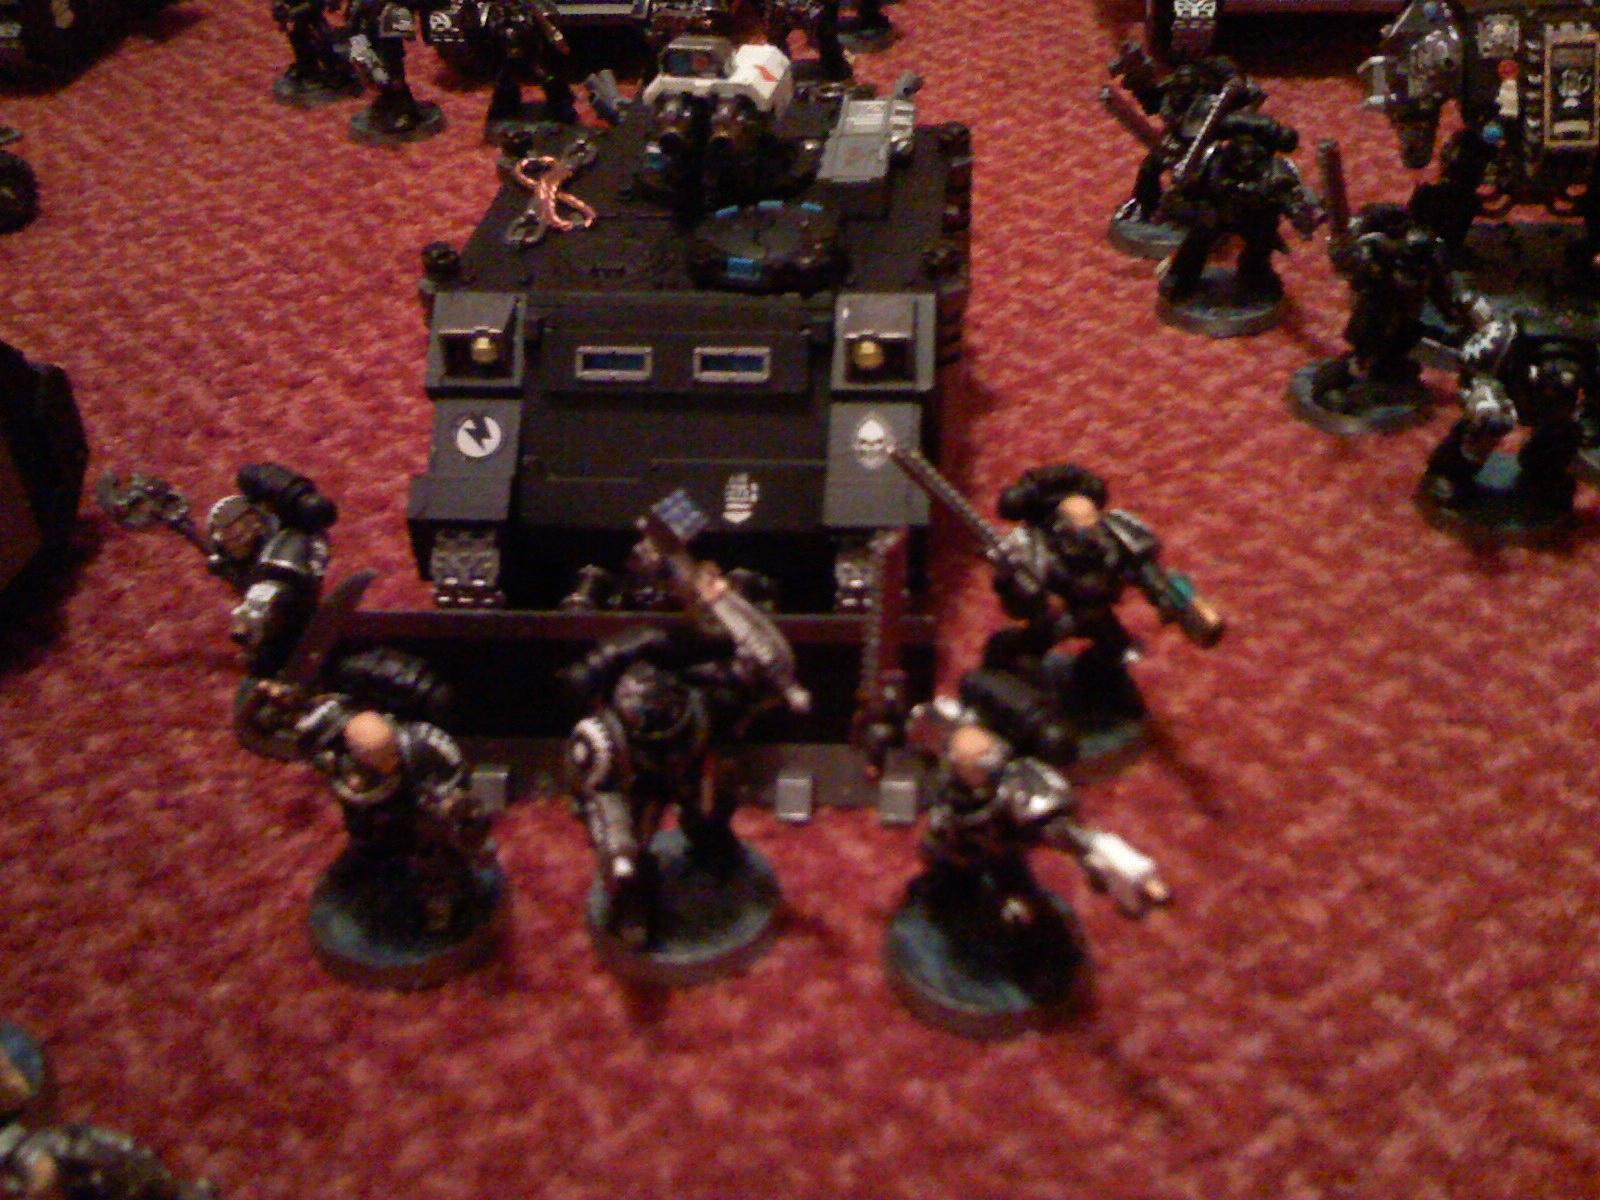 Iron Hands, Razorback, Space Marines, Veteran, Warhammer 40,000